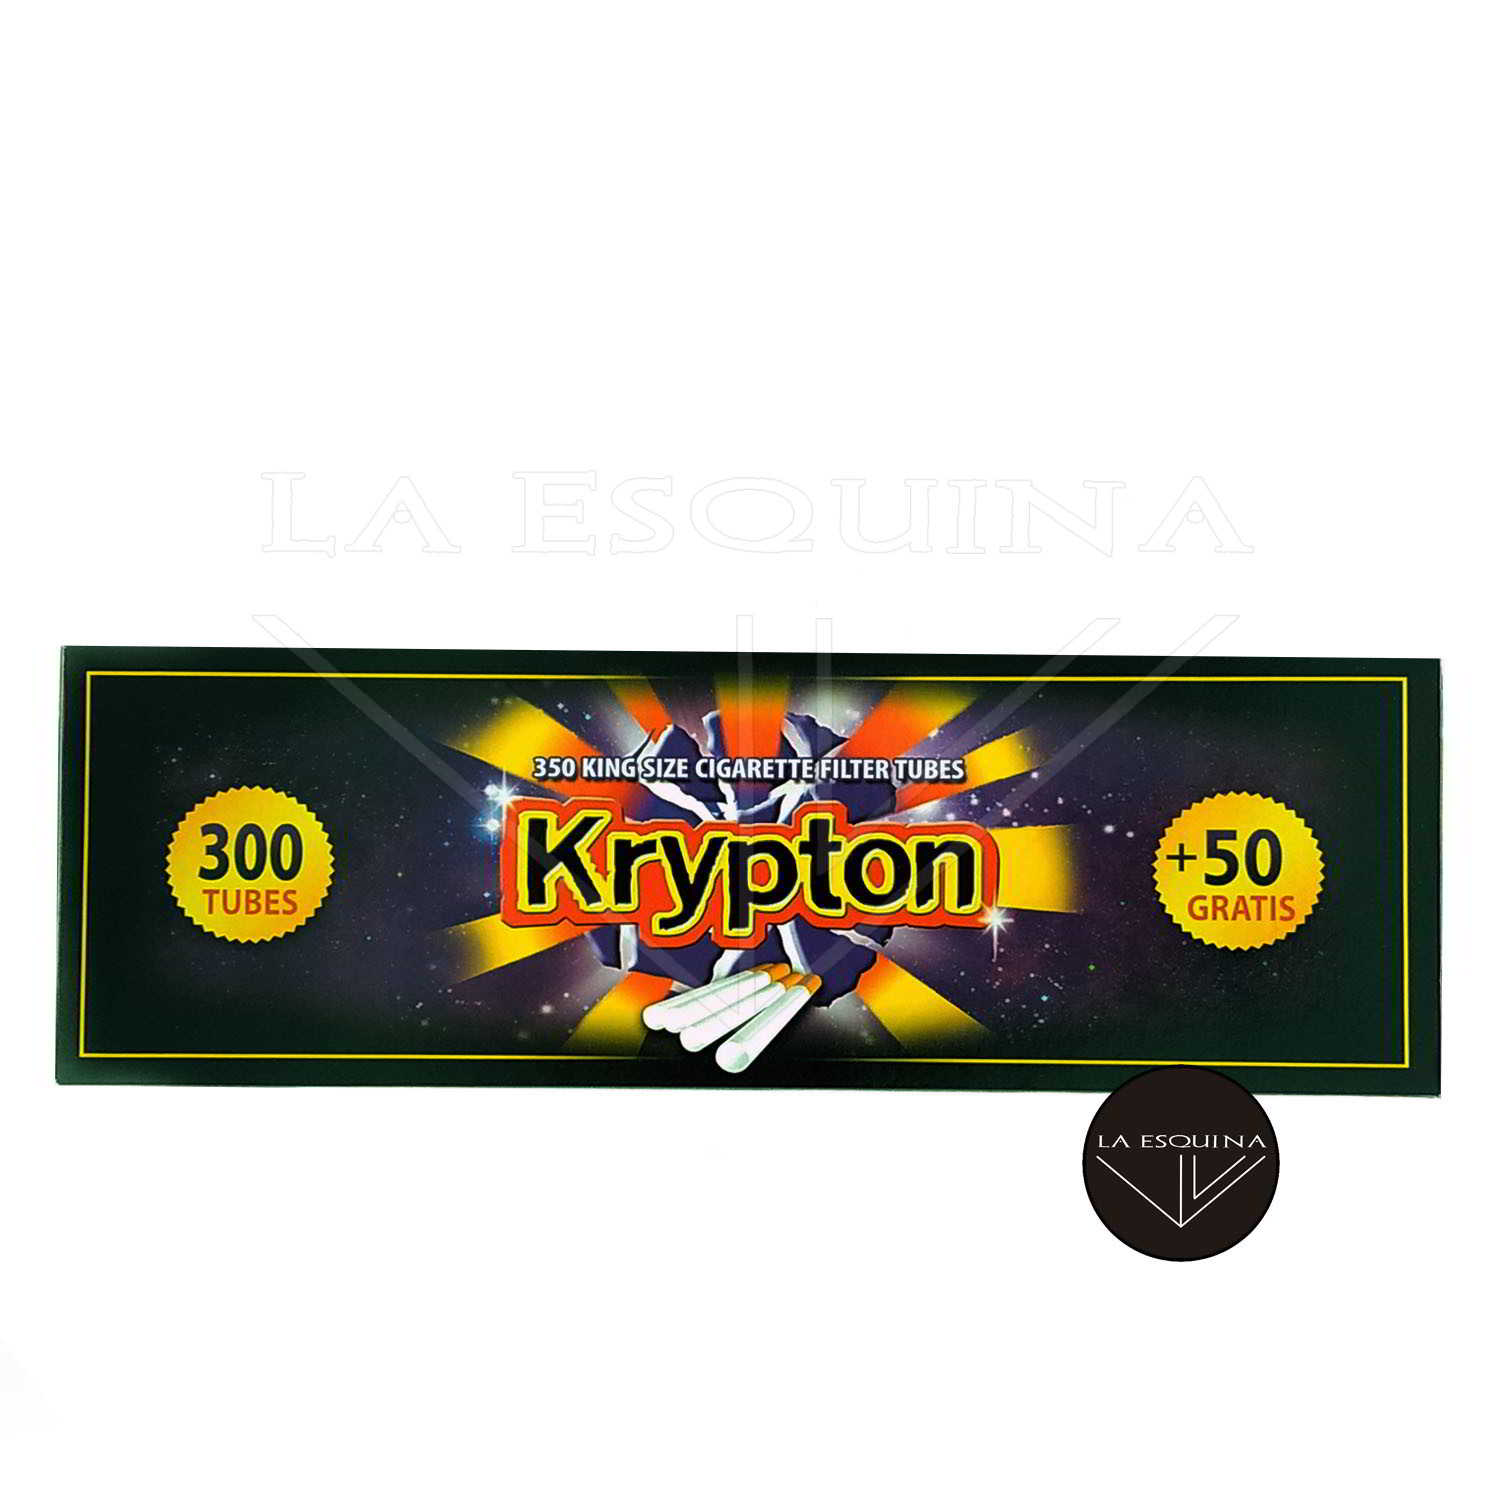 Tubos KRYPTON 350